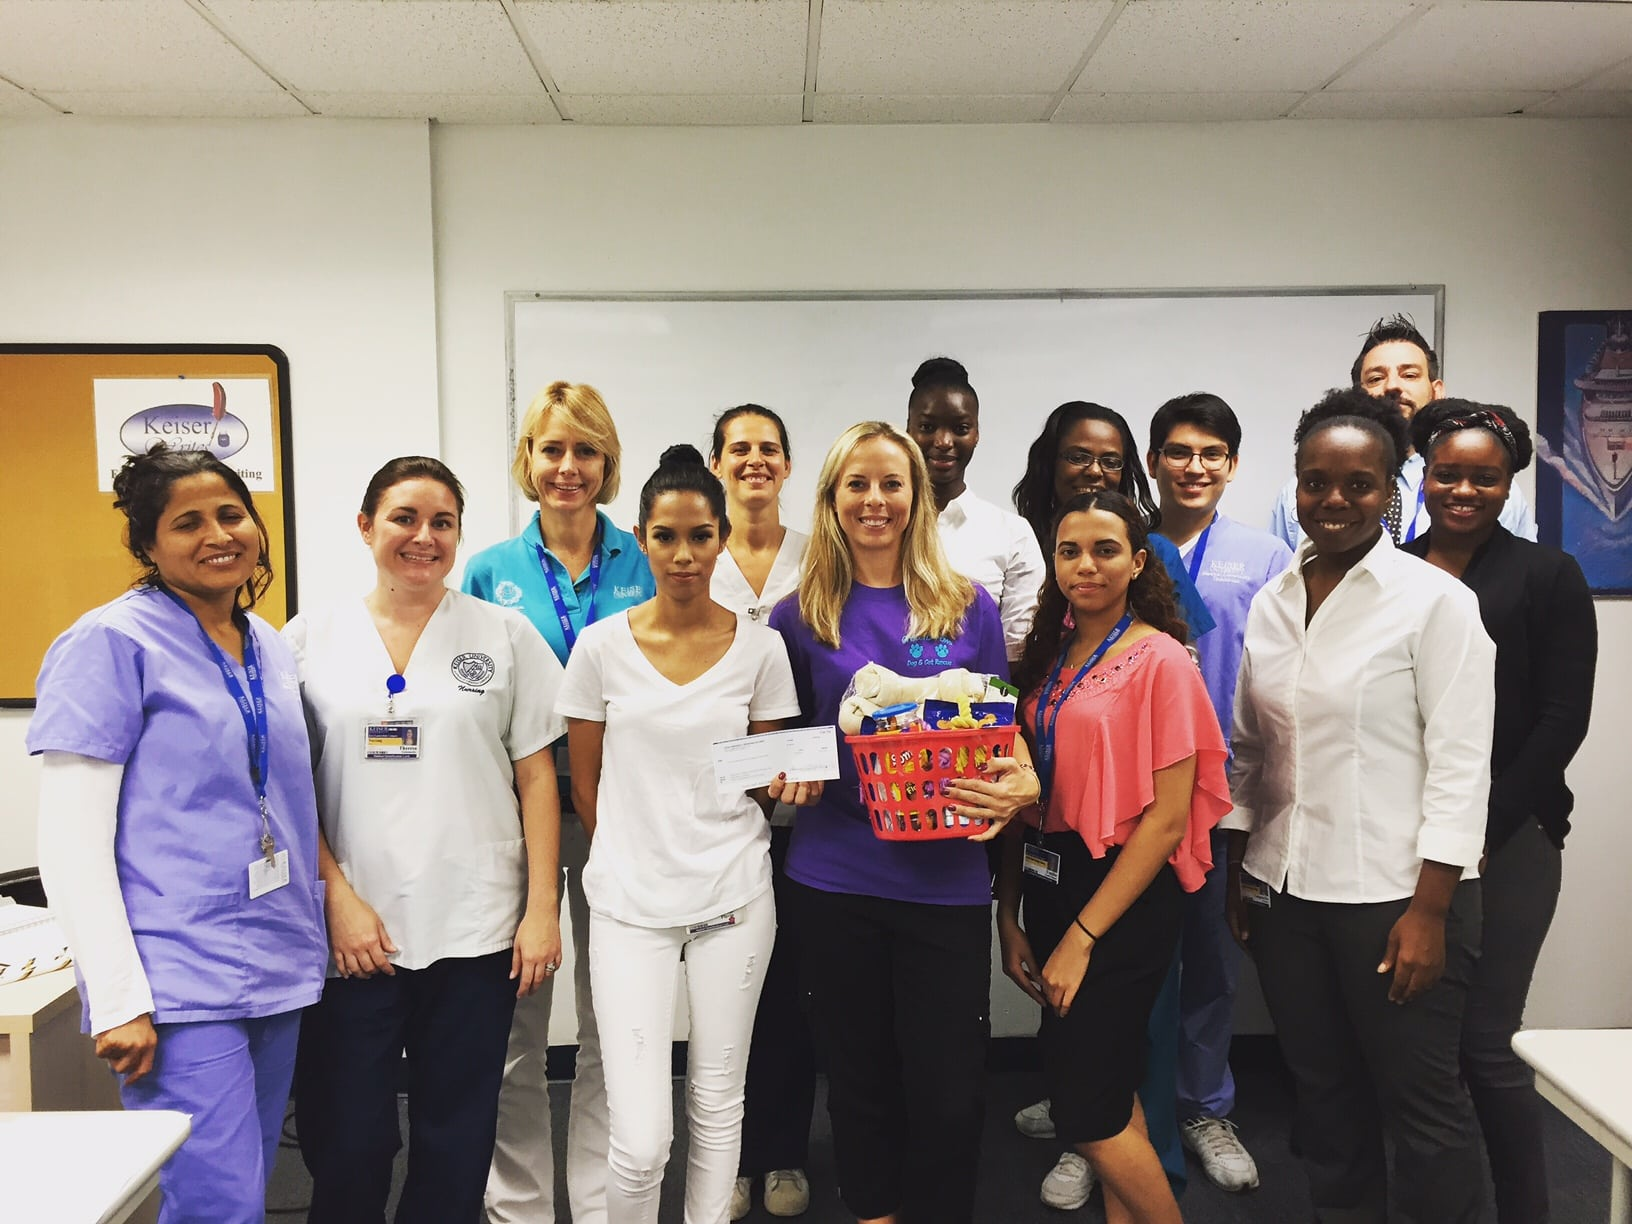 PTK Members at the Ft. Lauderdale Campus Make a Donation to Grateful Paws Cat & Dog Rescue